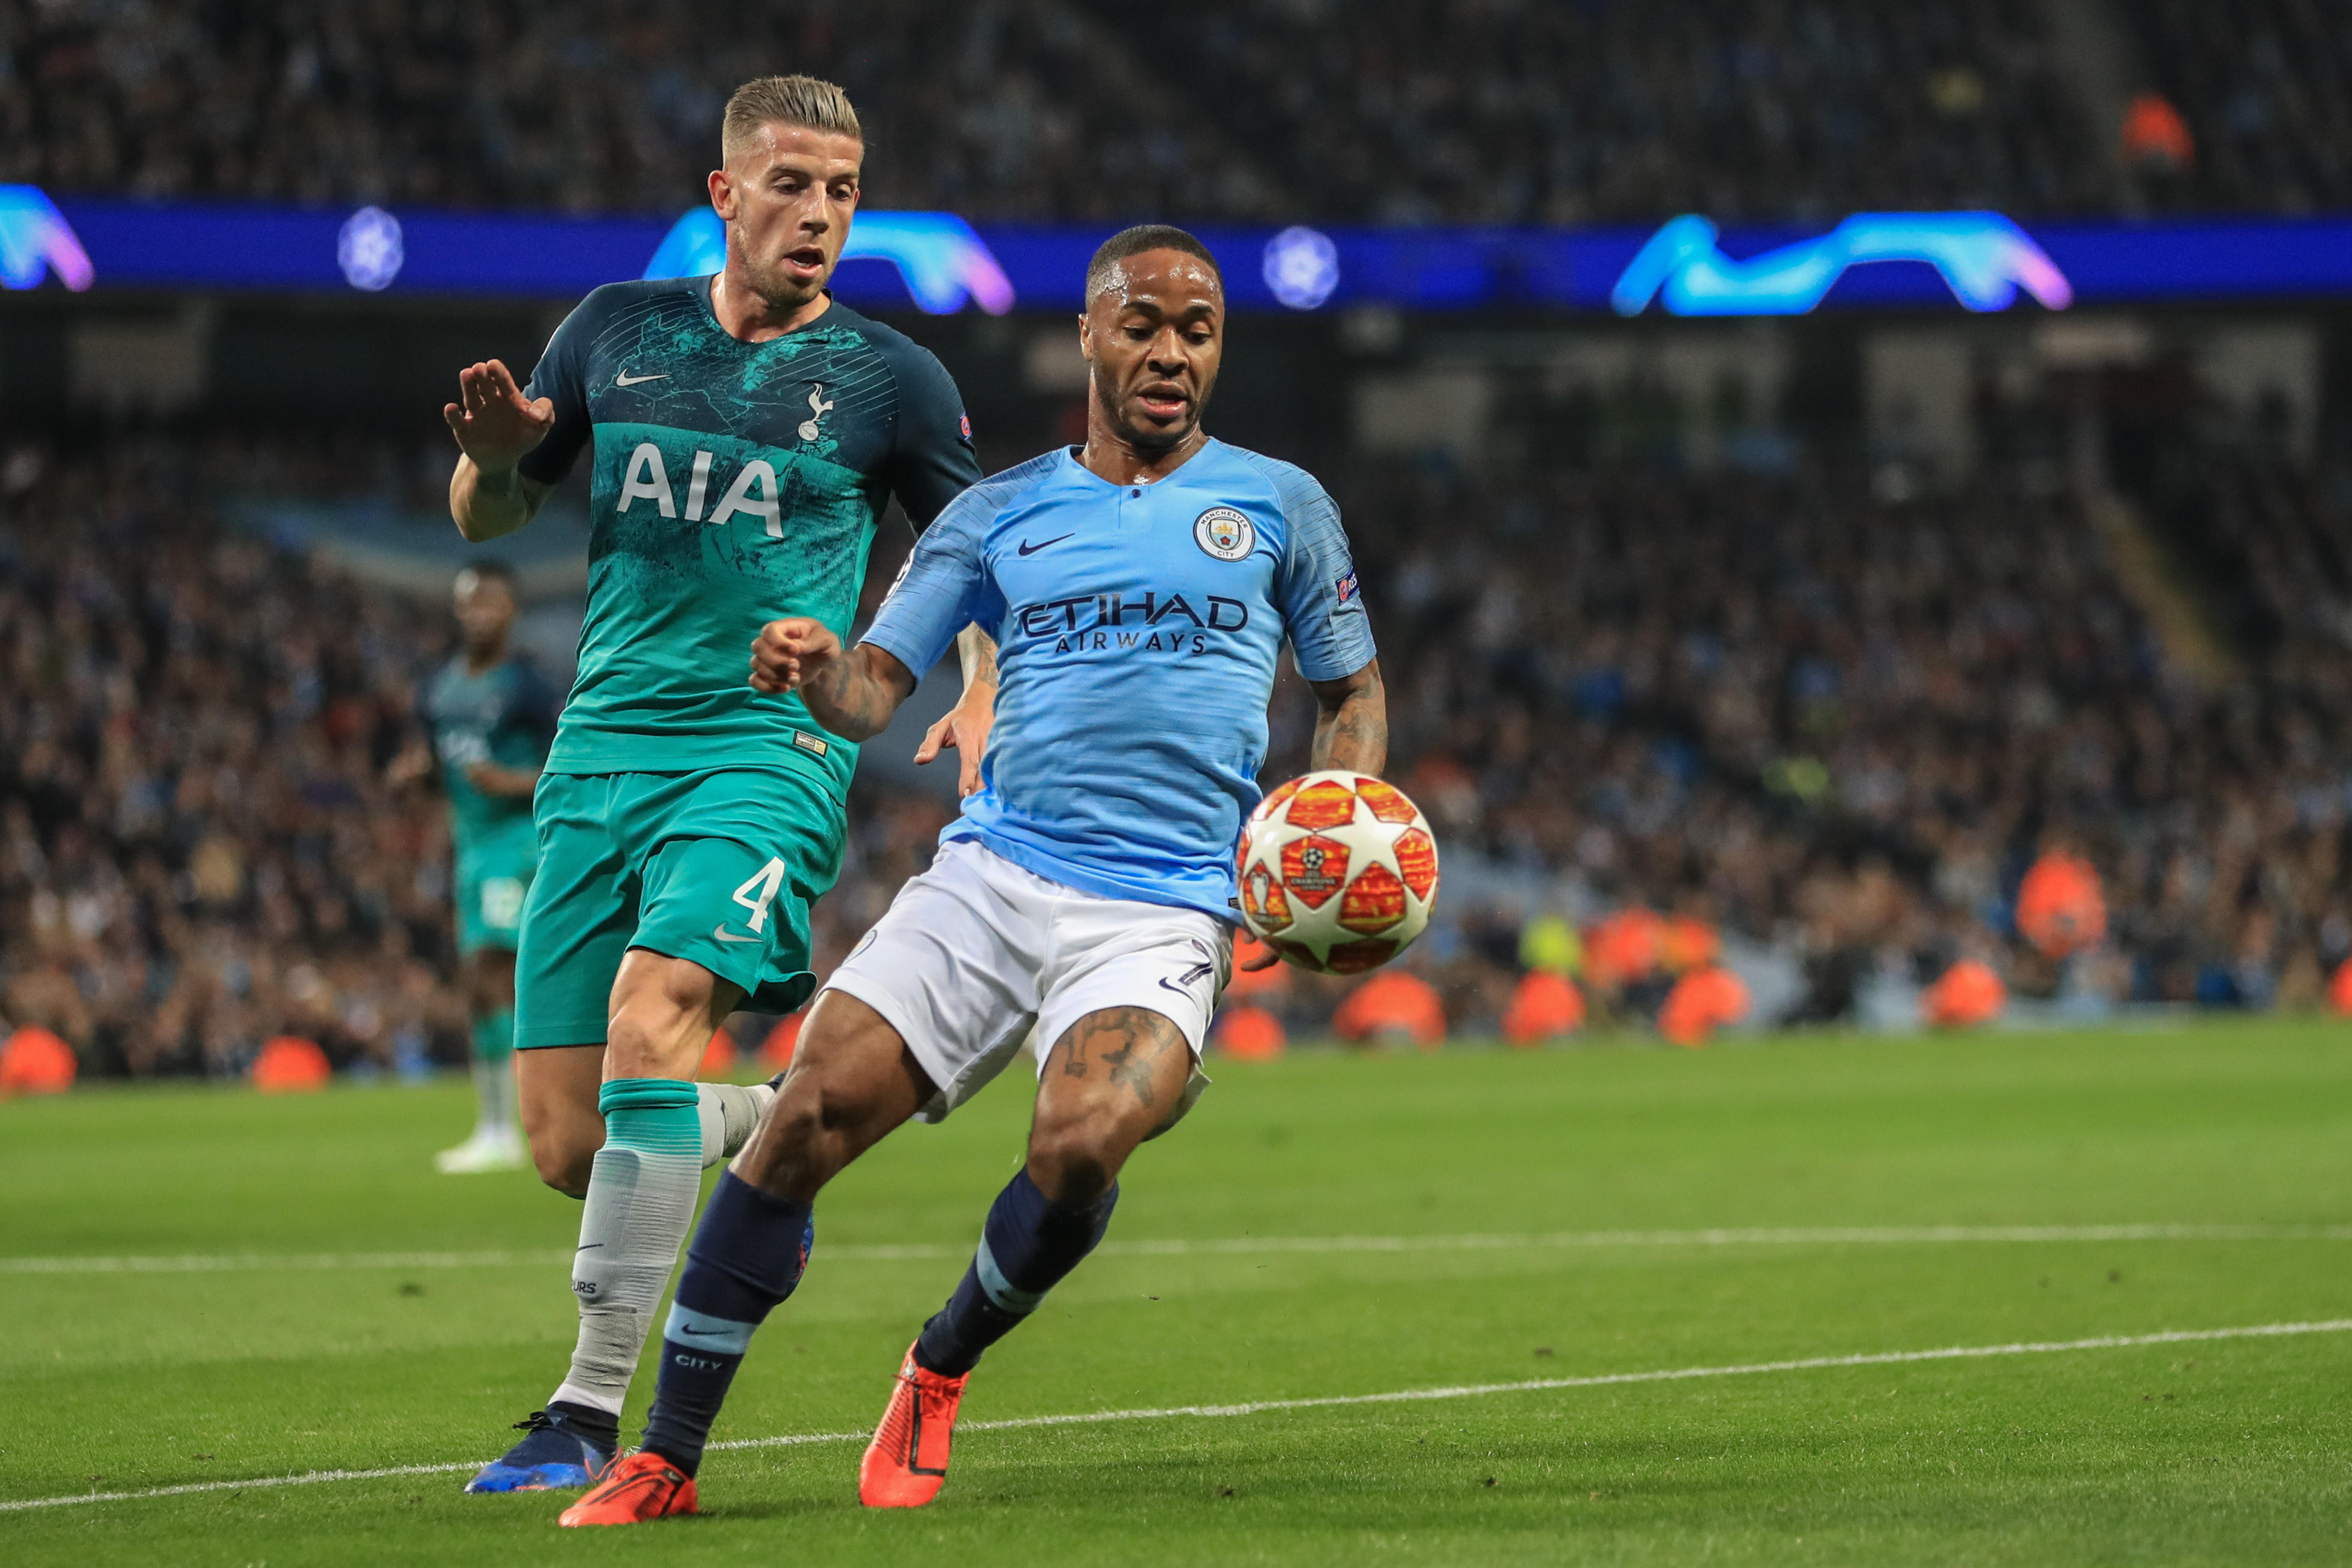 The English Premier League is back with a bang as Tottenham Hotspur prepare to take on champions Manchester City on Sunday